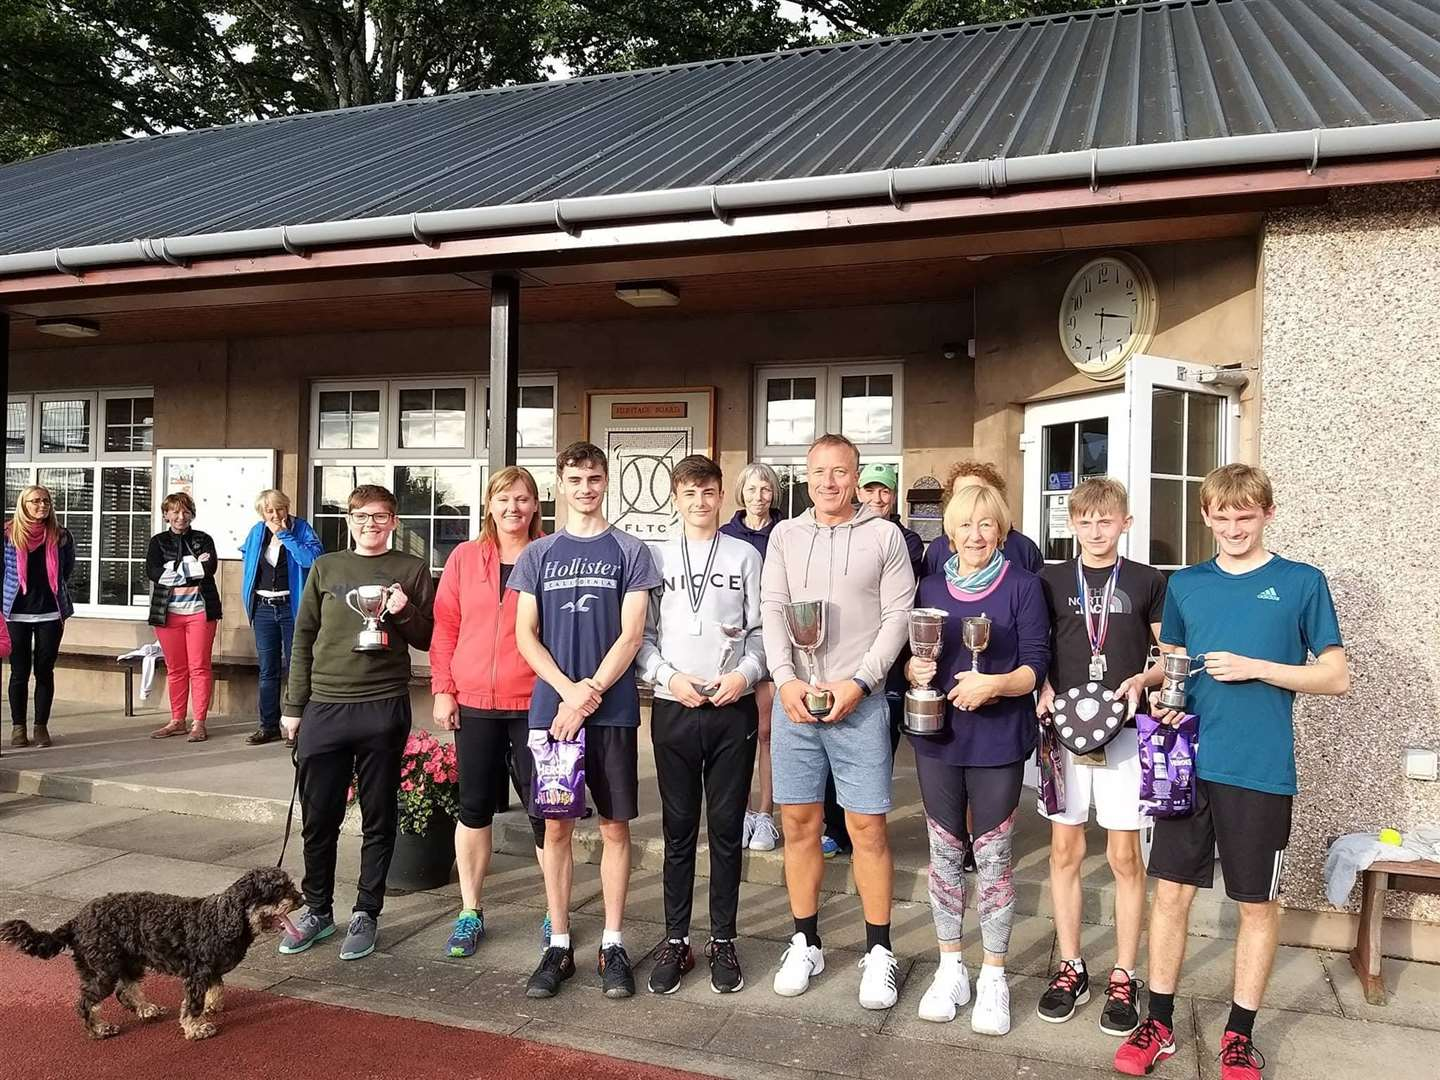 All the trophy winners at the Forres Tennis Club championships.